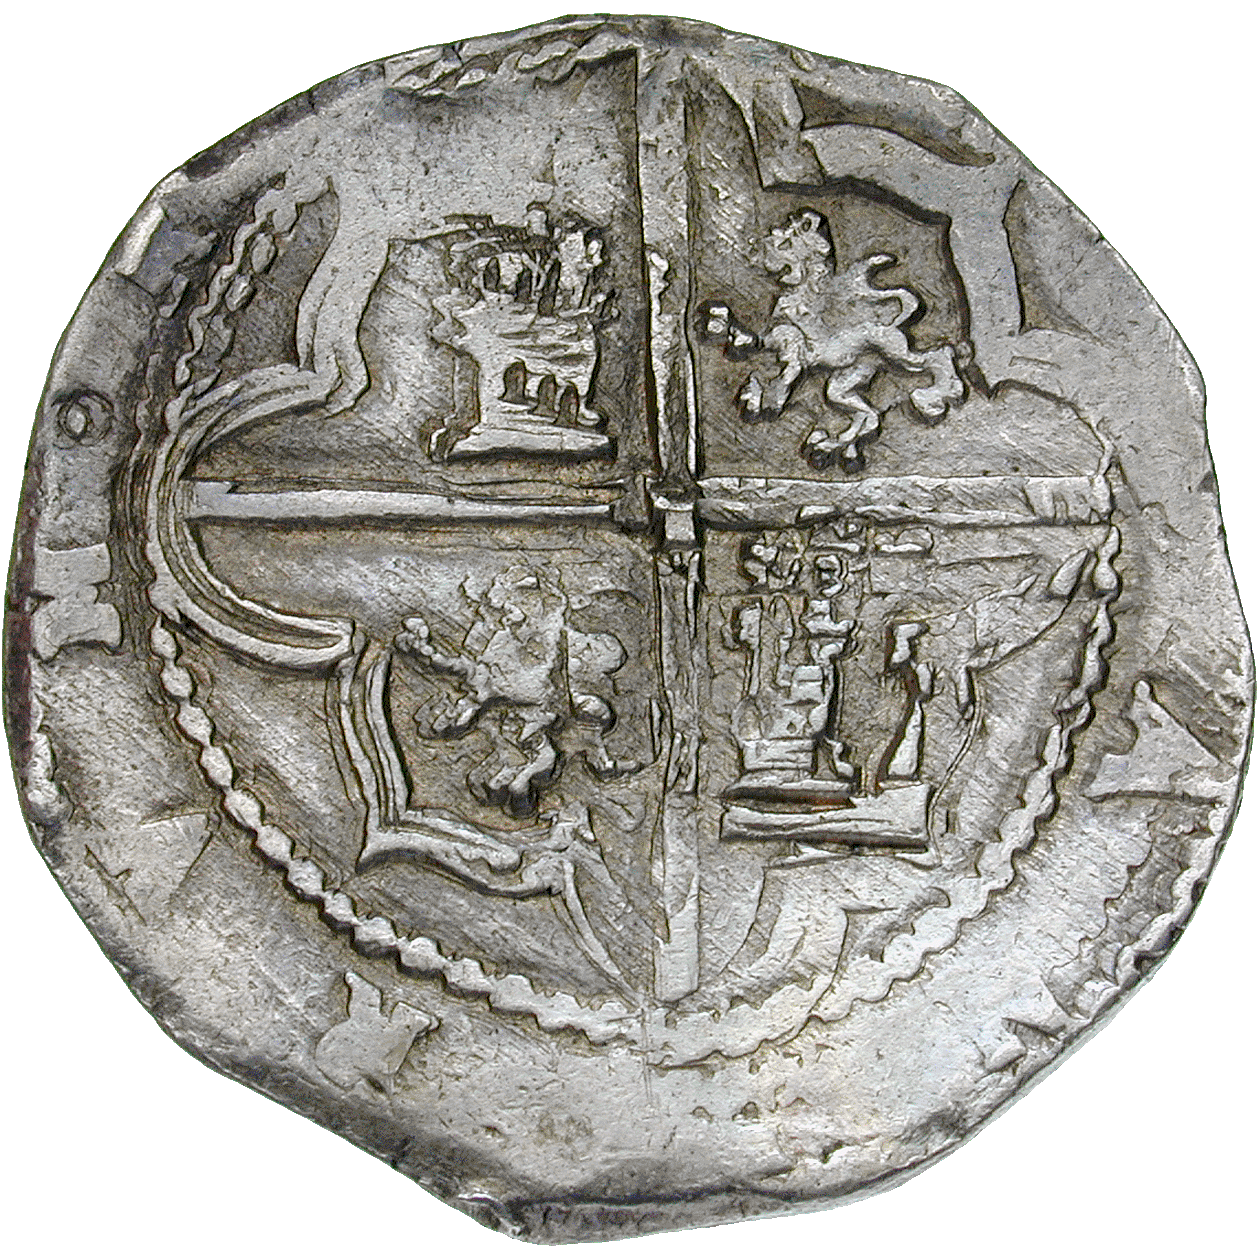 Kingdom of Spain, Philip II, Real de a ocho (Peso) (reverse)